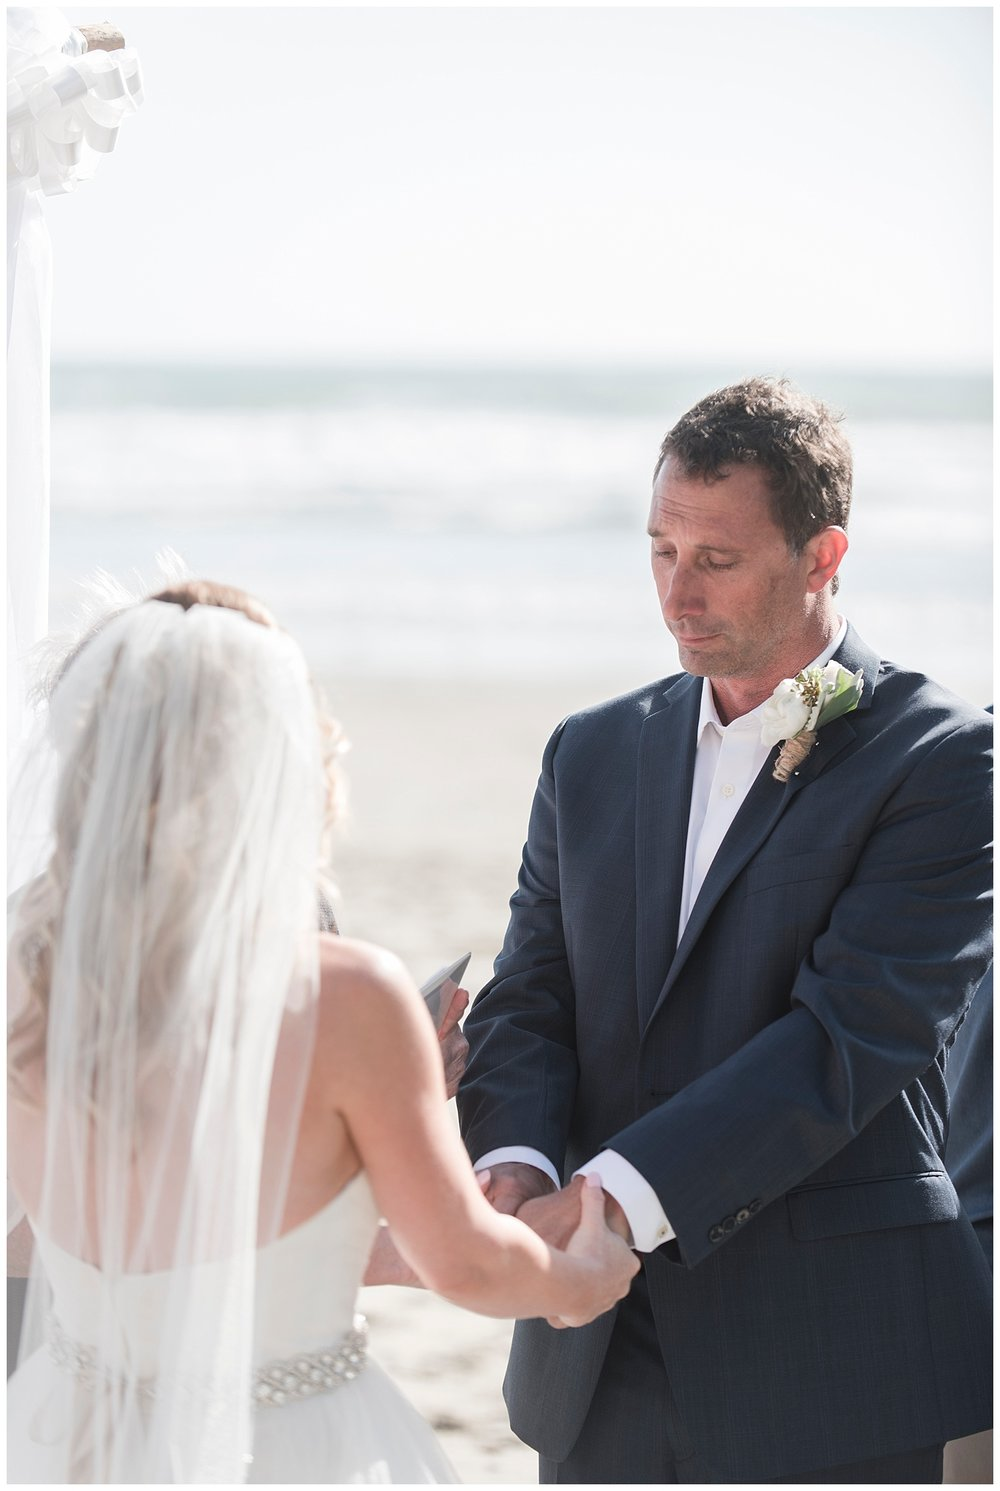 Malzone wedding_Beach wedding_Renoda Campbell Photography-2-16.jpg